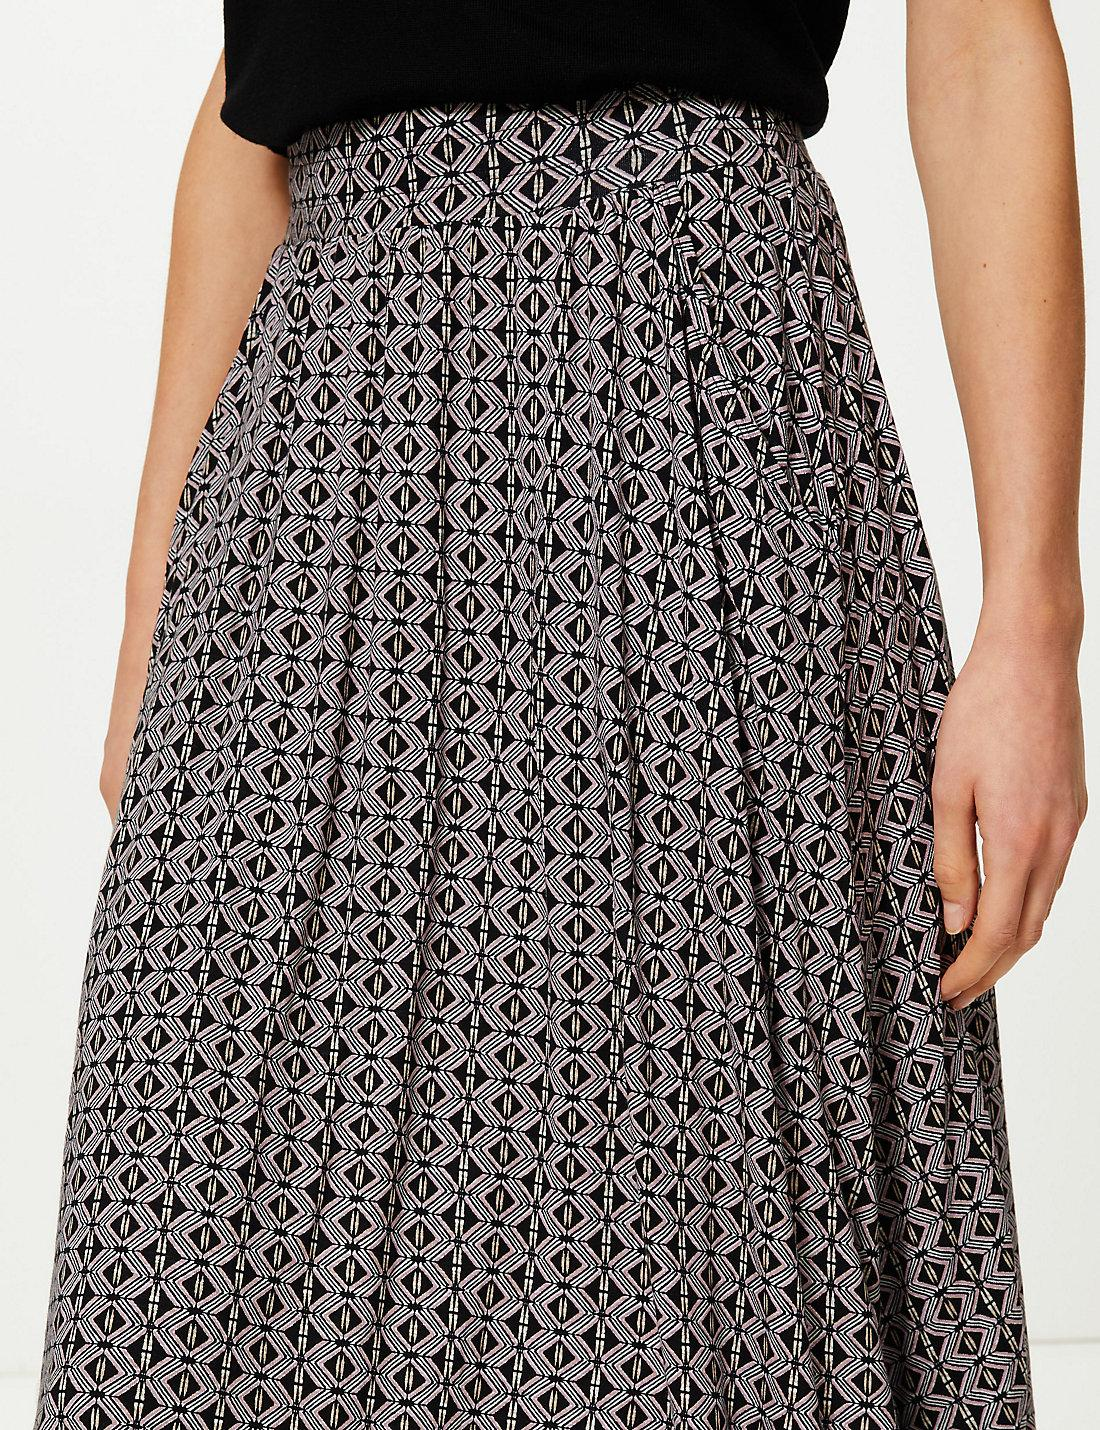 fd0191369ed0 Lyst - Marks & Spencer Printed Jersey A-line Midi Skirt in Black